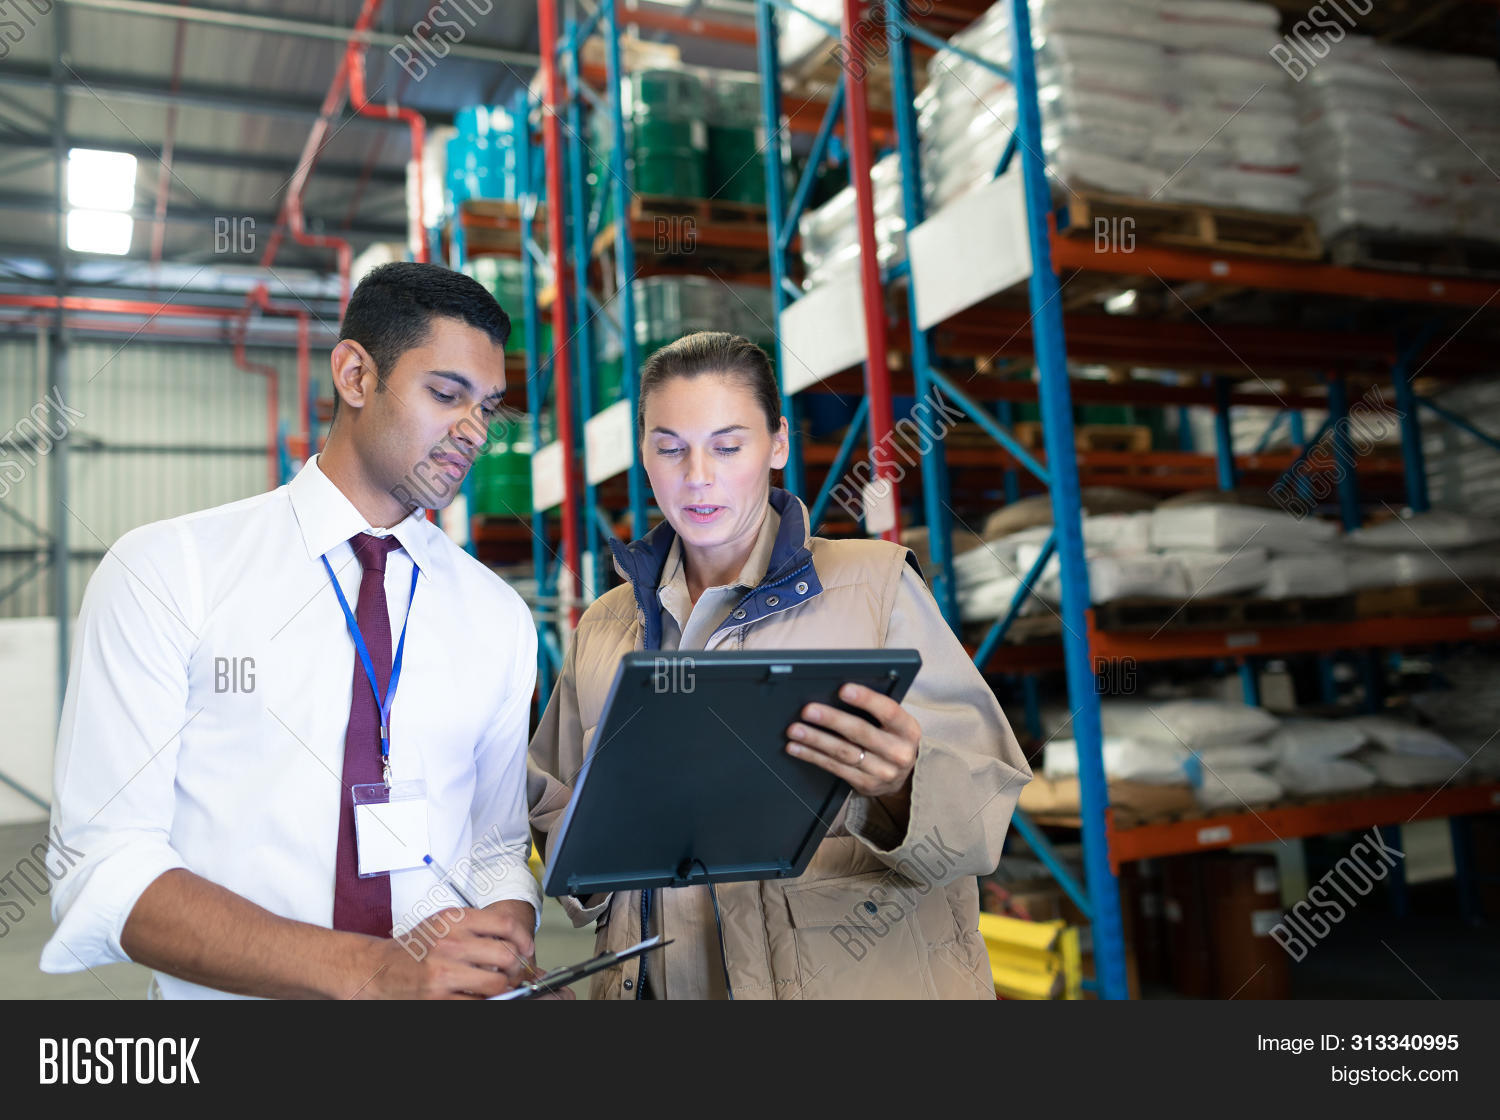 business,caucasian,caucasian ethnicity,commercial,coworker,digital tablet,distribution,distribution warehouse,expertise,factory,female,freight,freight transportation,holding,industry,interacting,inventory,logistics,looking,male,man,management,mid adult,mid adult women,mixed-race,mixed-race person,occupation,packaging,pallet rack,professional,reading,shipping,skill,staff,standing,stock,storage,storehouse,supervisor,supply,tablet computer,tablet pc,talking,uniform,warehouse,well dressed,woman,workplace,young adult,young men